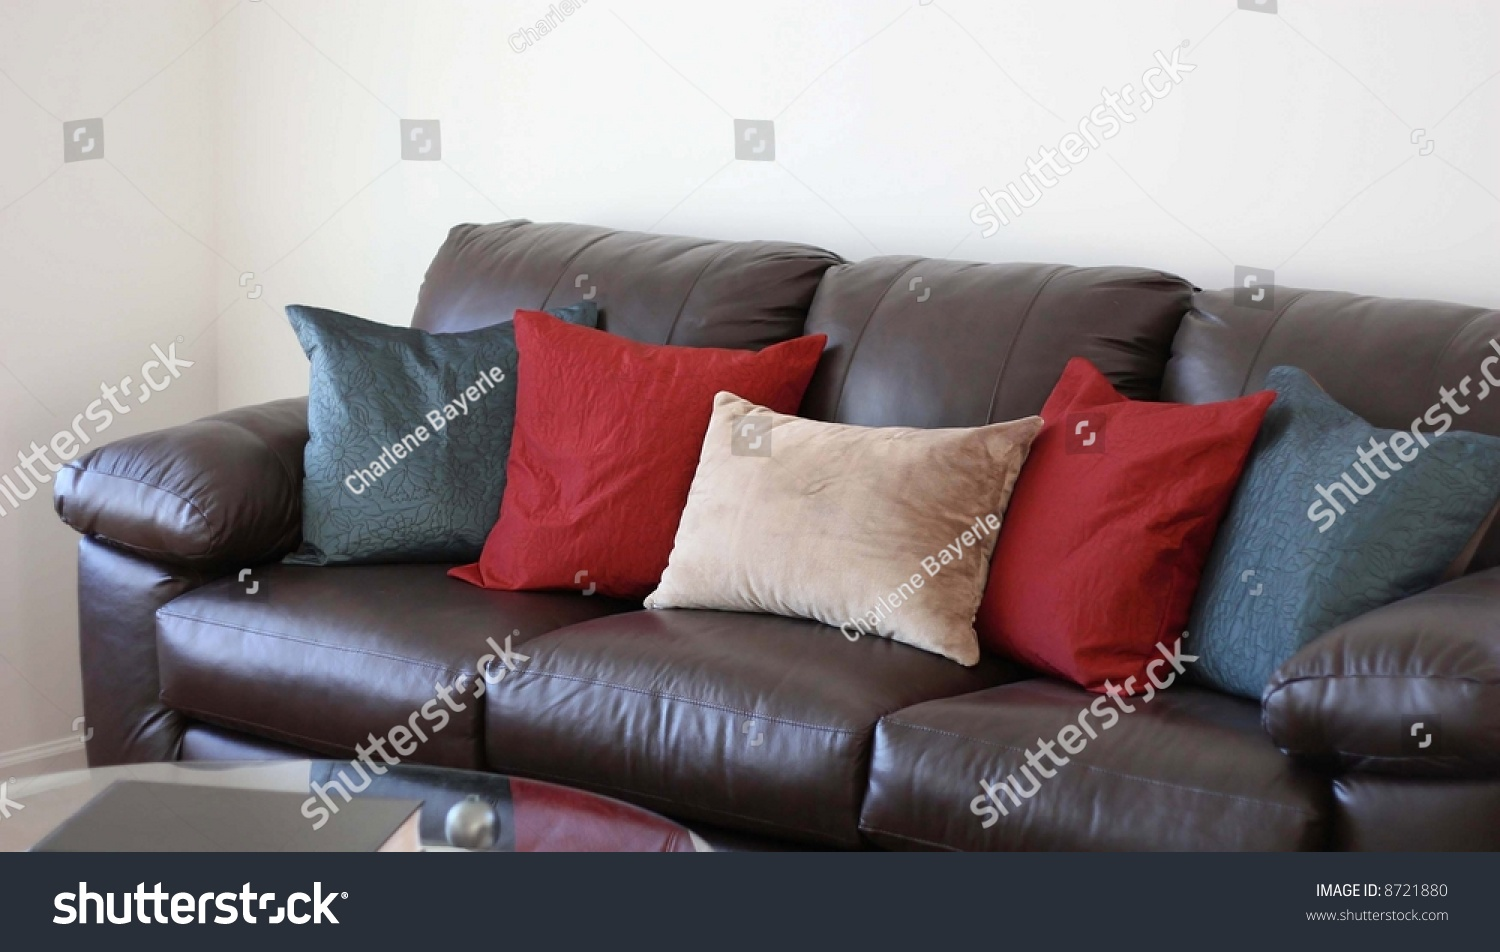 Picture of: Comfortable Brown Leather Couch Pillows Stock Photo Edit Now 8721880